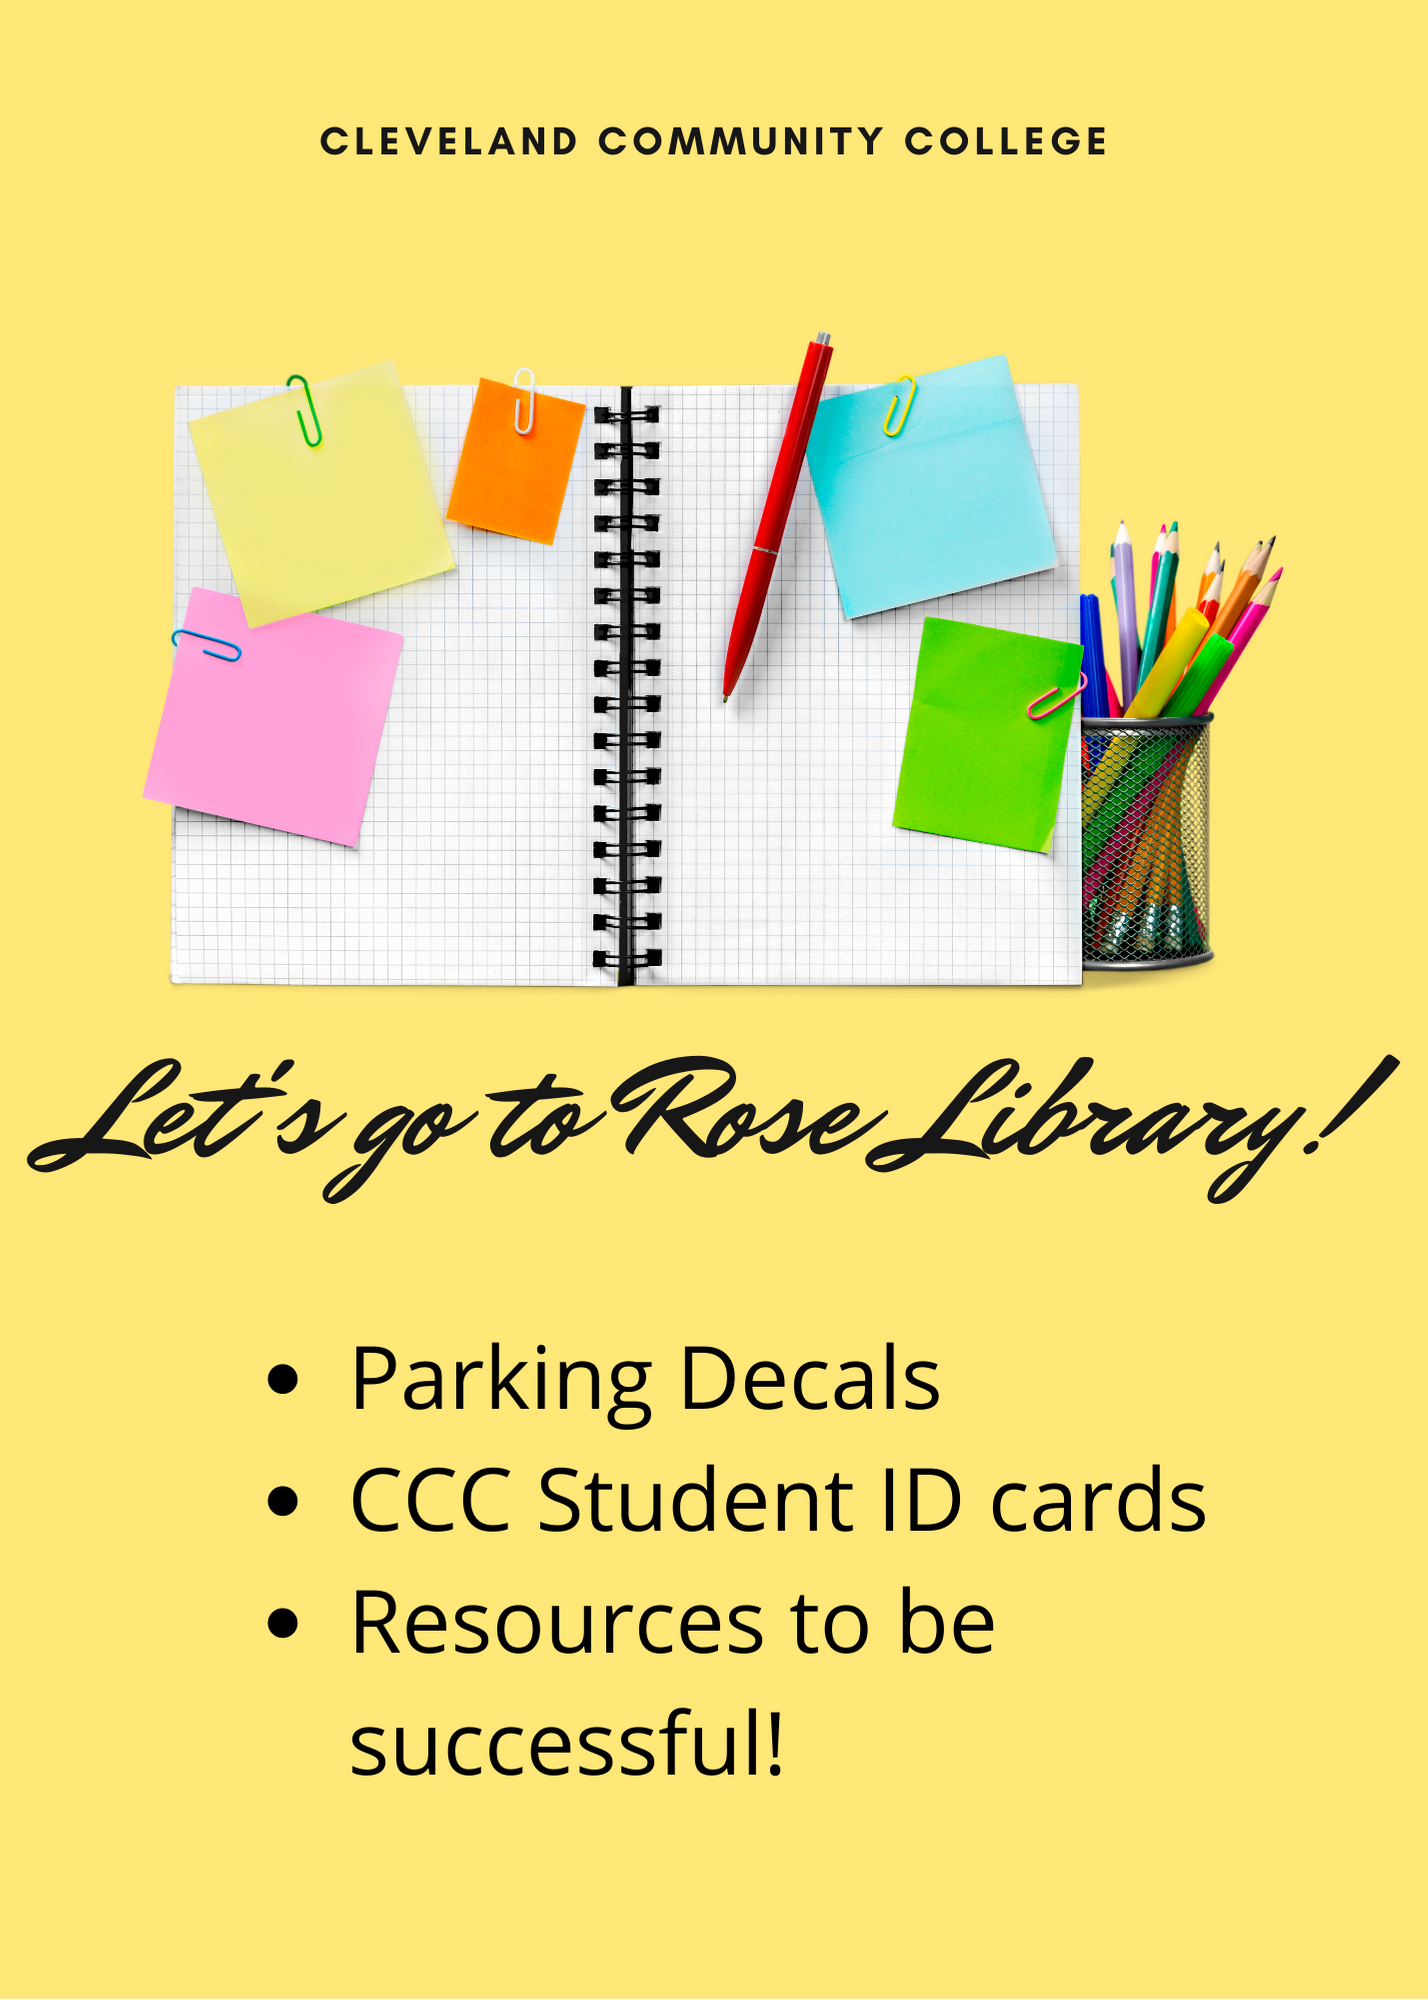 yellow background with school supplies and words saying Let's go to Rose Library to get parking decals, CCC student Id cards and resources to be successful this semester!